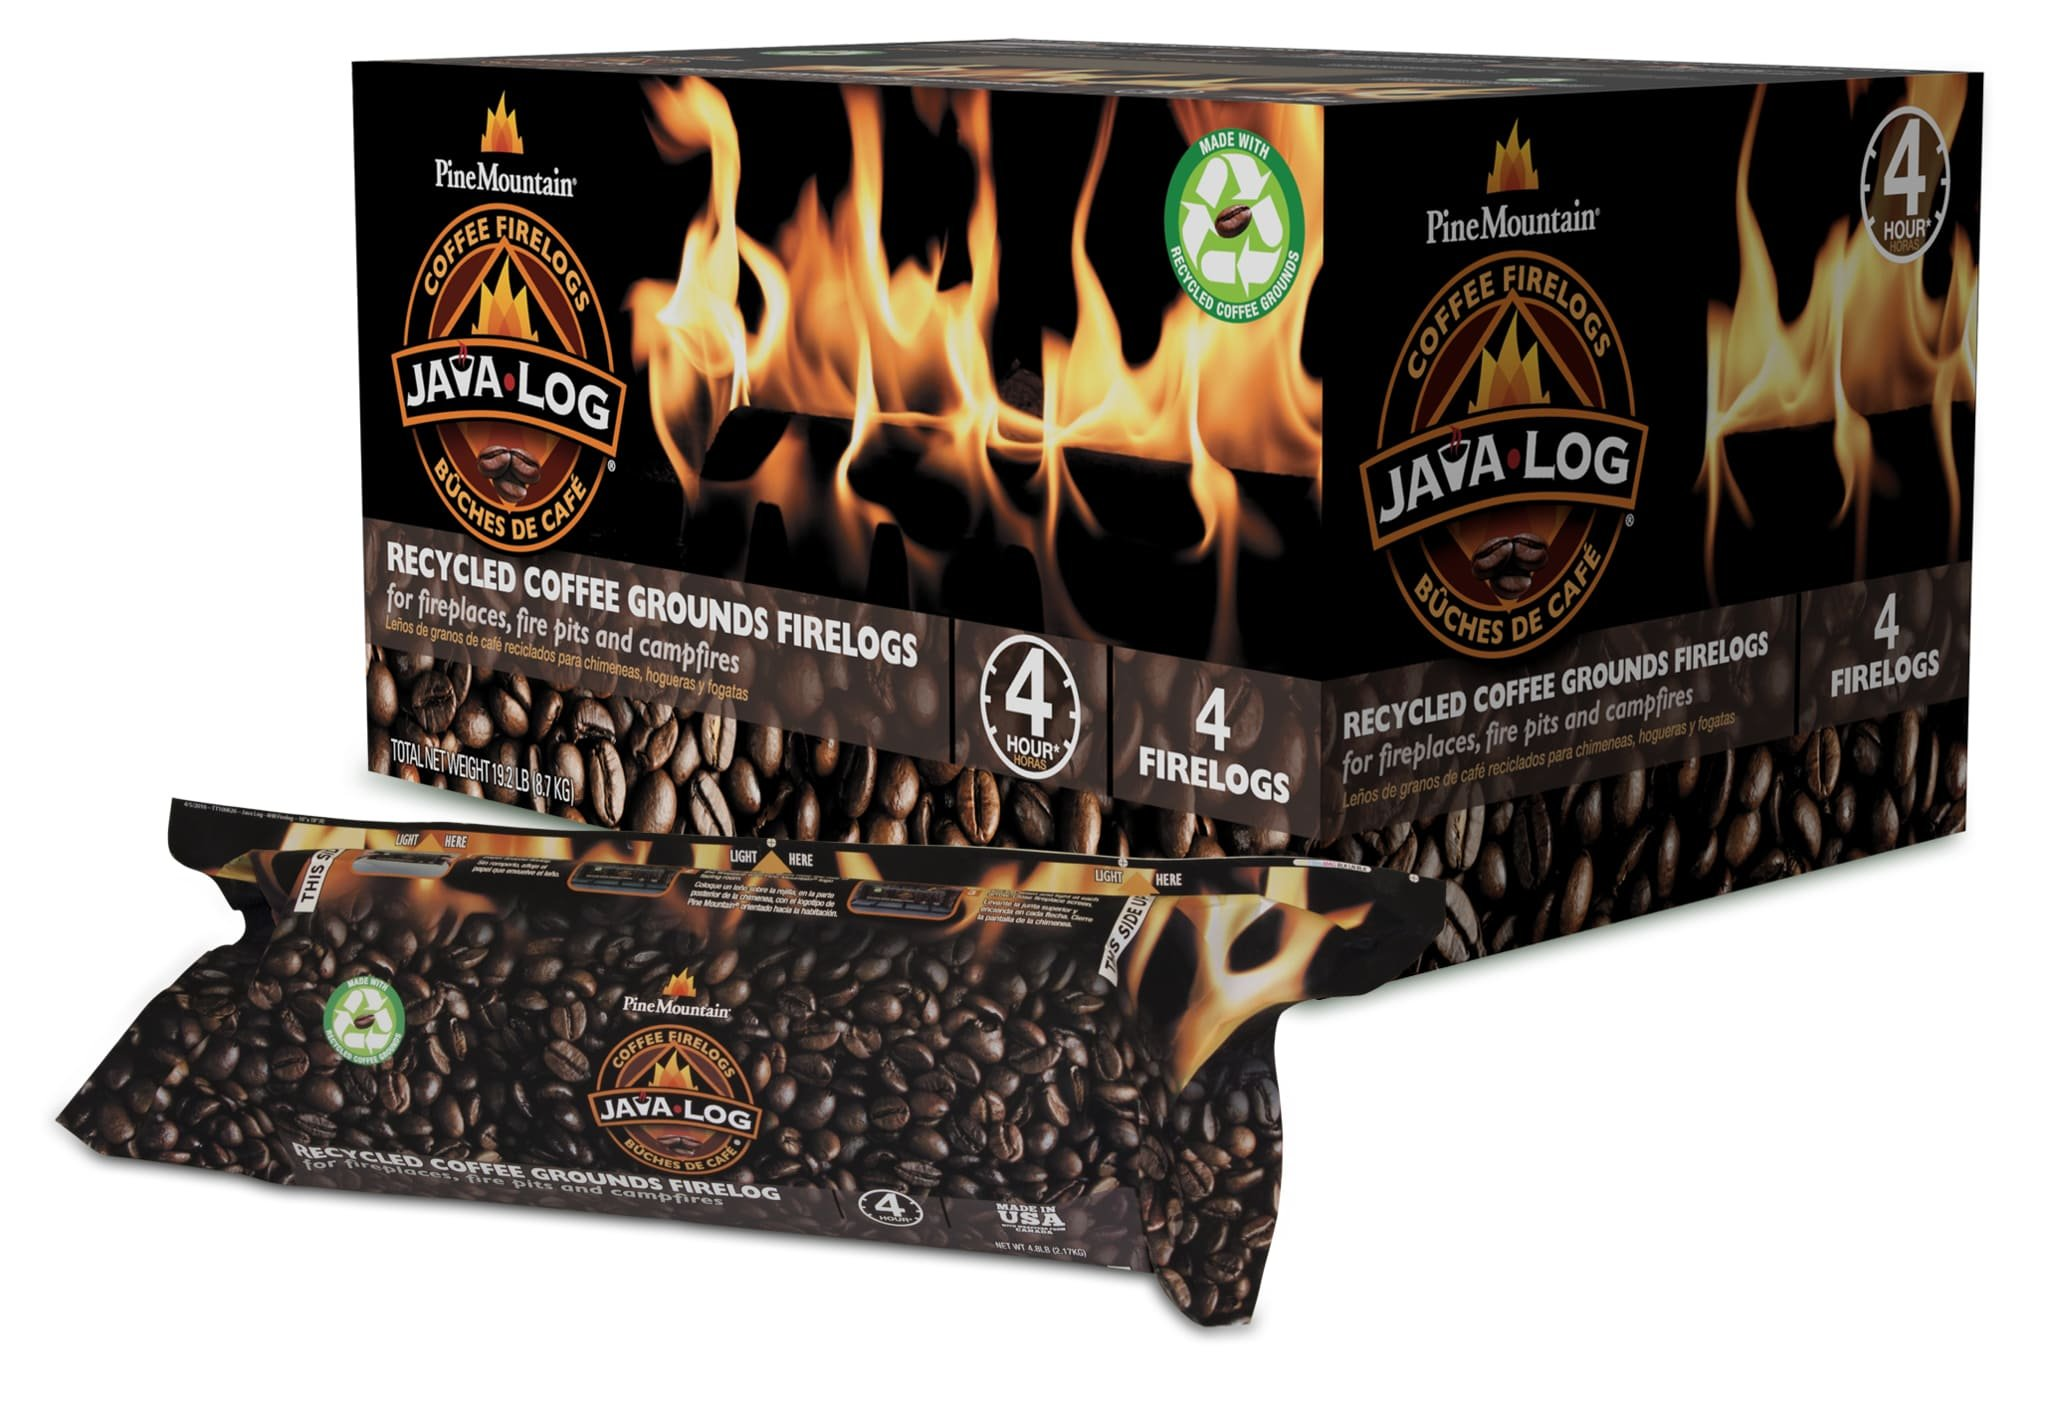 Pine Mountain, Indoor & Pine Mountain Java Recycled Coffee Grounds Hour Time, 4 Logs (4152501471) Long Burning Firelog for Campfire, Fireplace, Fire Pit, Indoor & Outdoor Use, Brown, 4 count by Pine Mountain